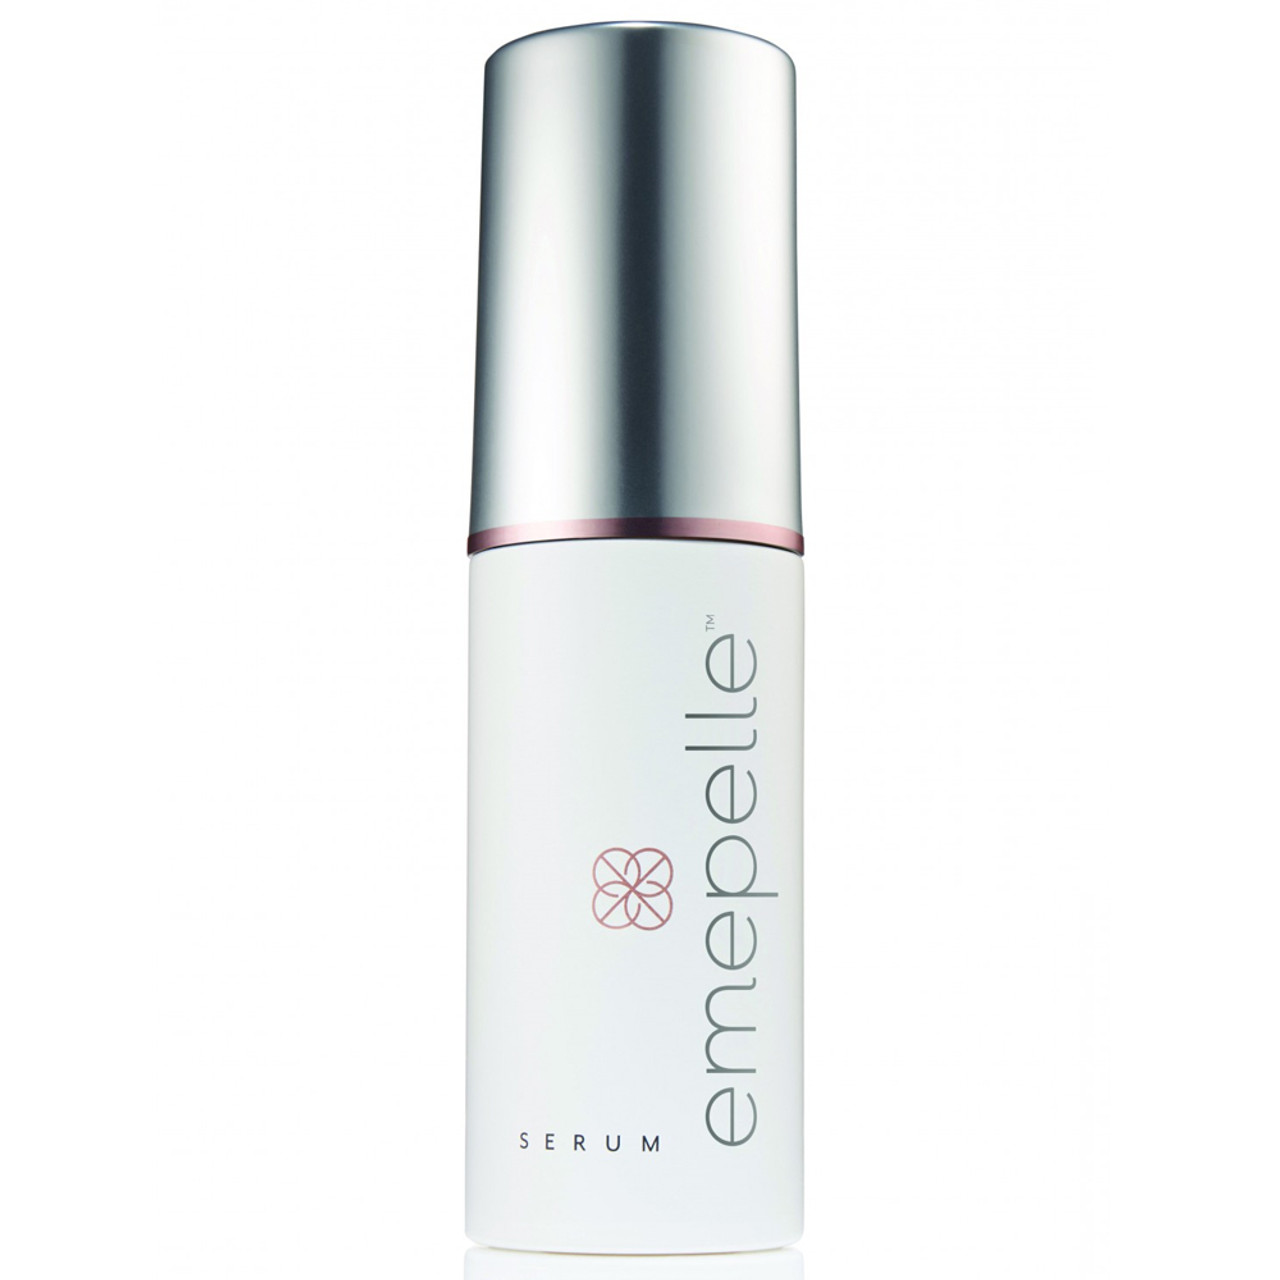 Emepelle Serum